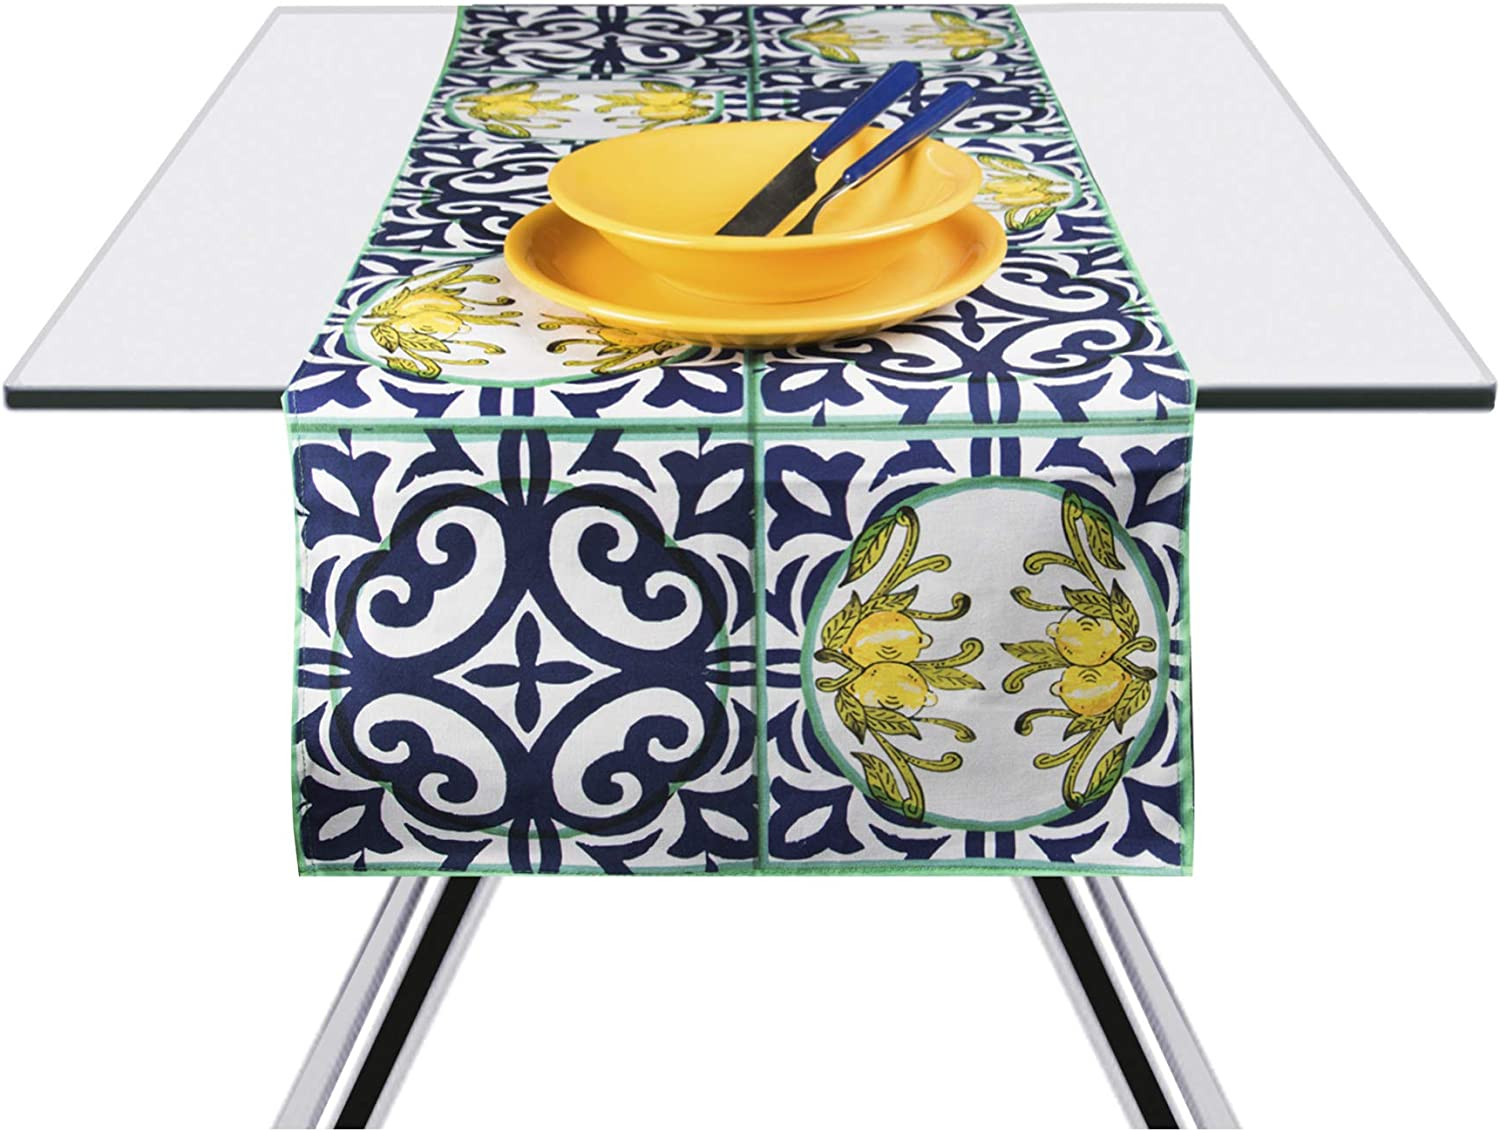 Yellow and Blue 45 x 140 cm Excelsa Amalfi Table Runner 100/% Cotton